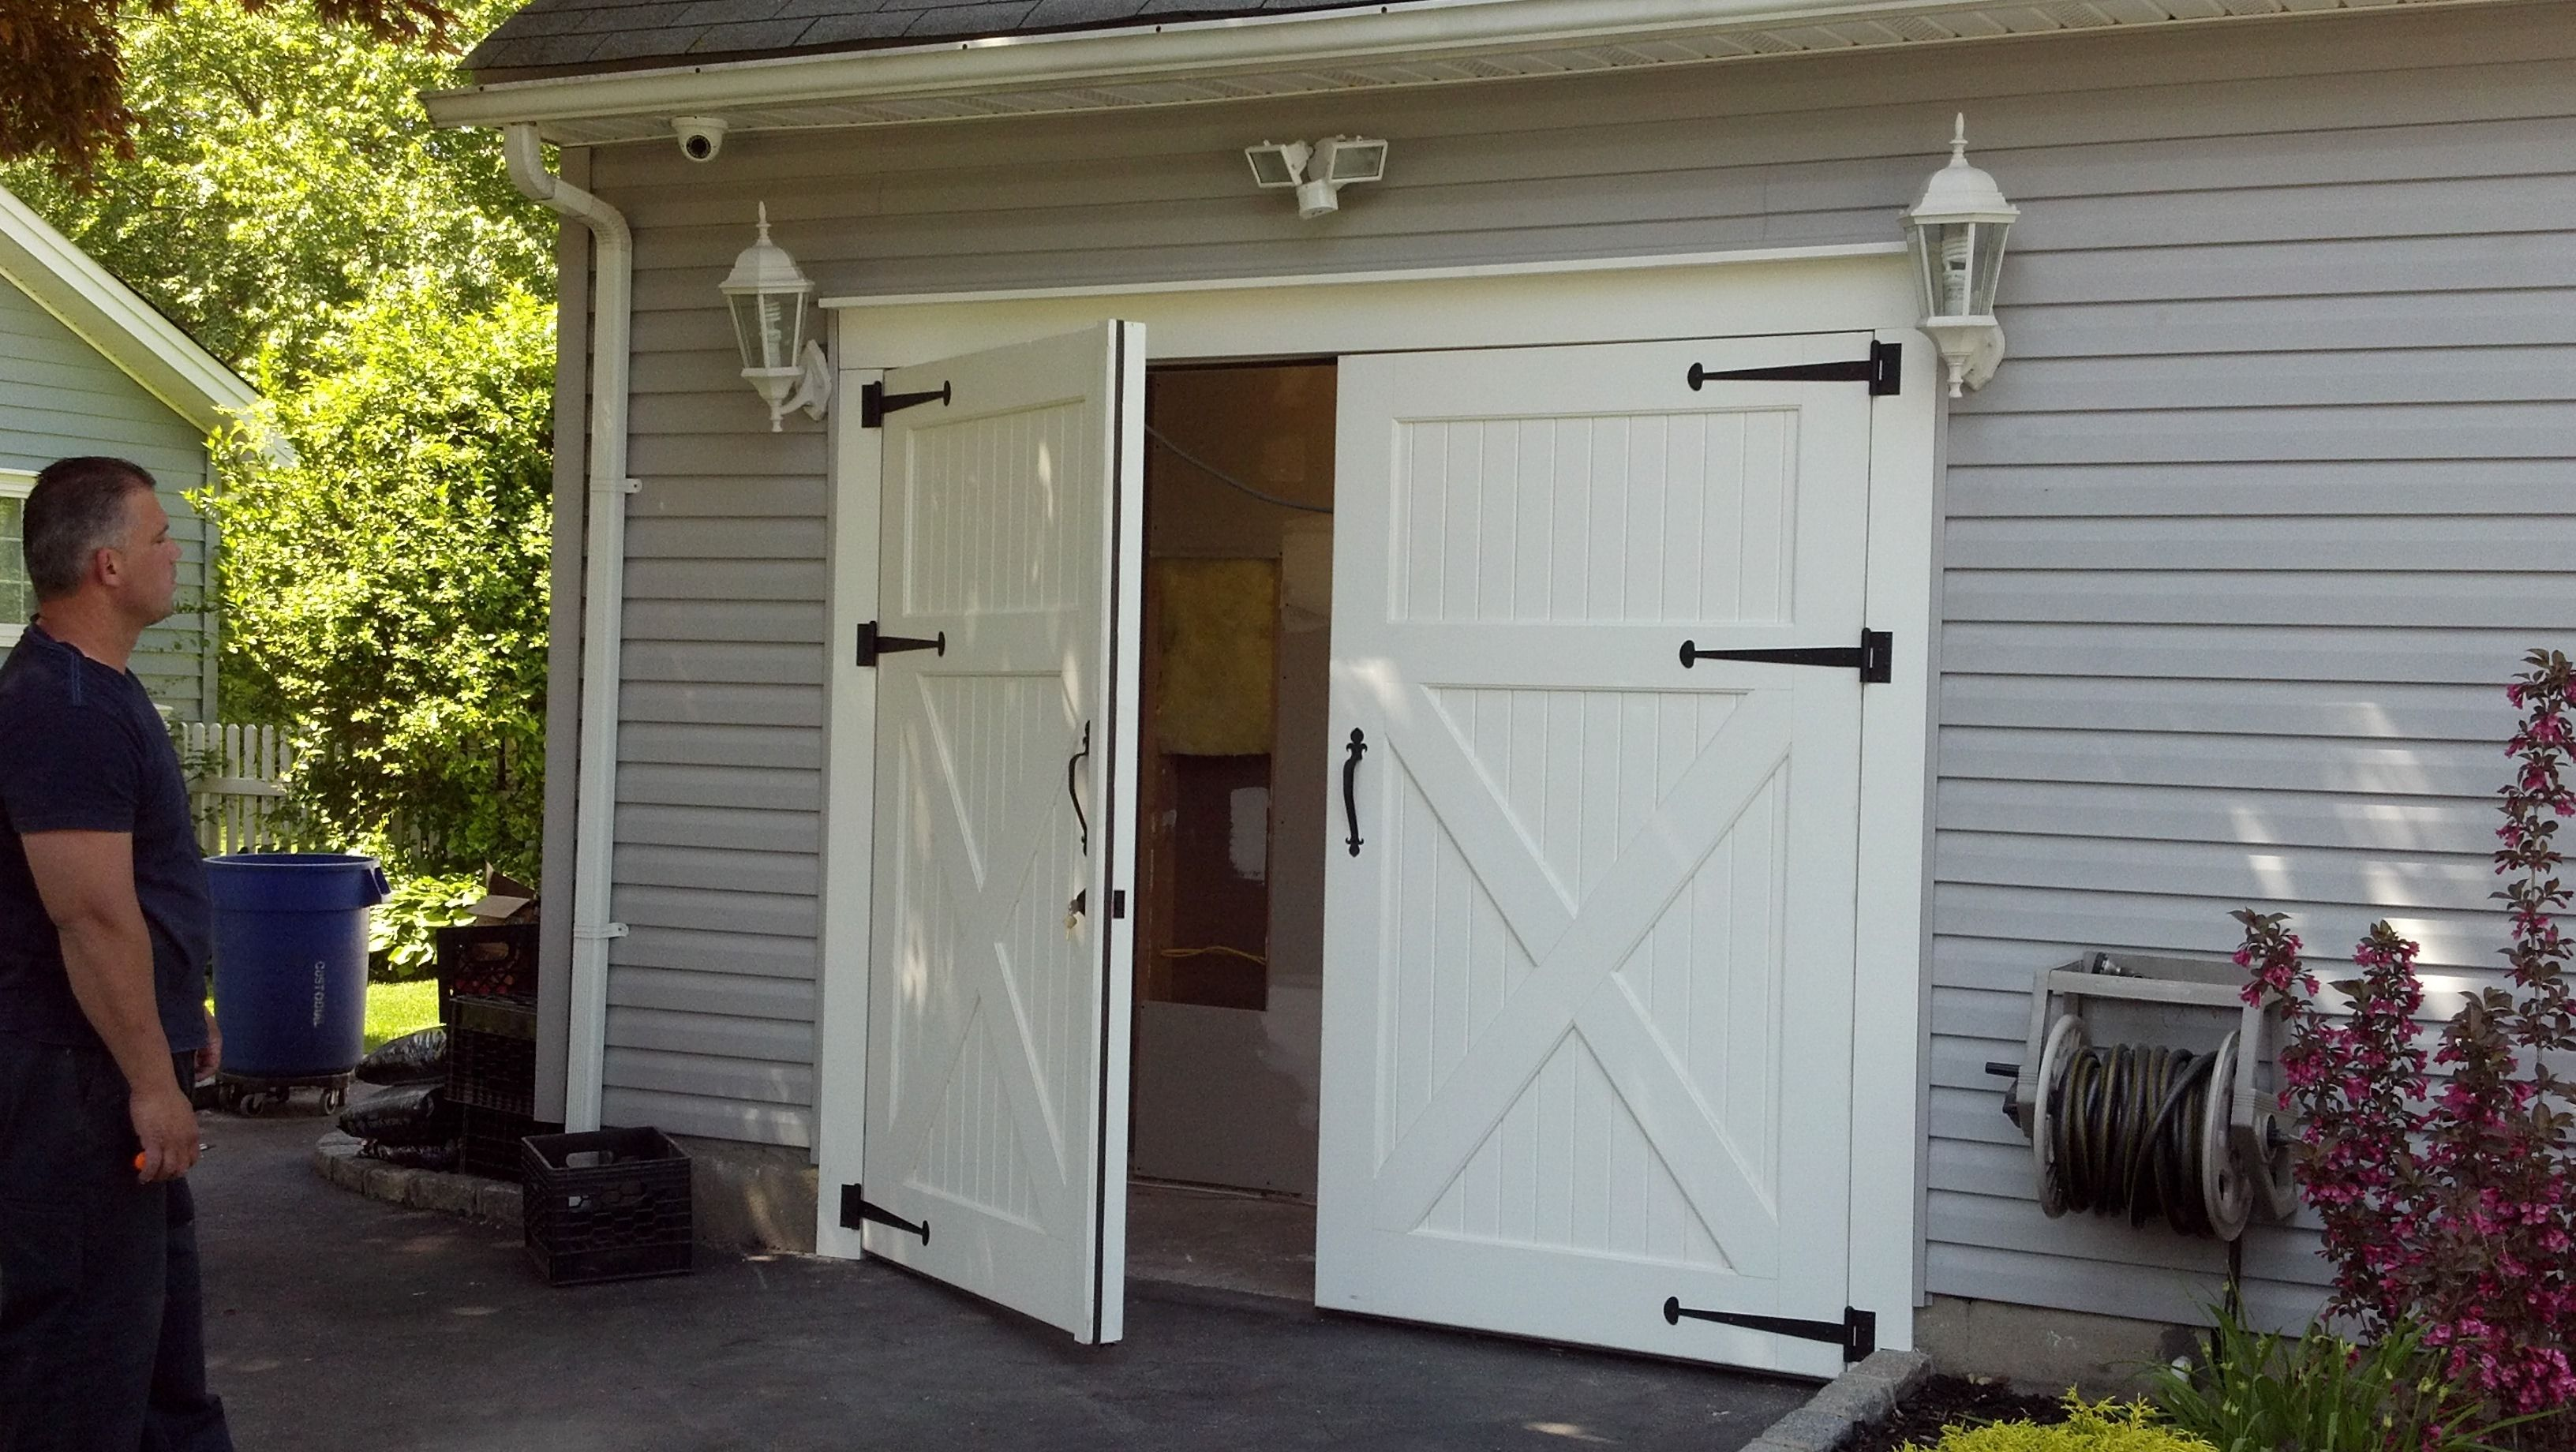 gates electric portcullis swing front homify img by garage doors swinging projects